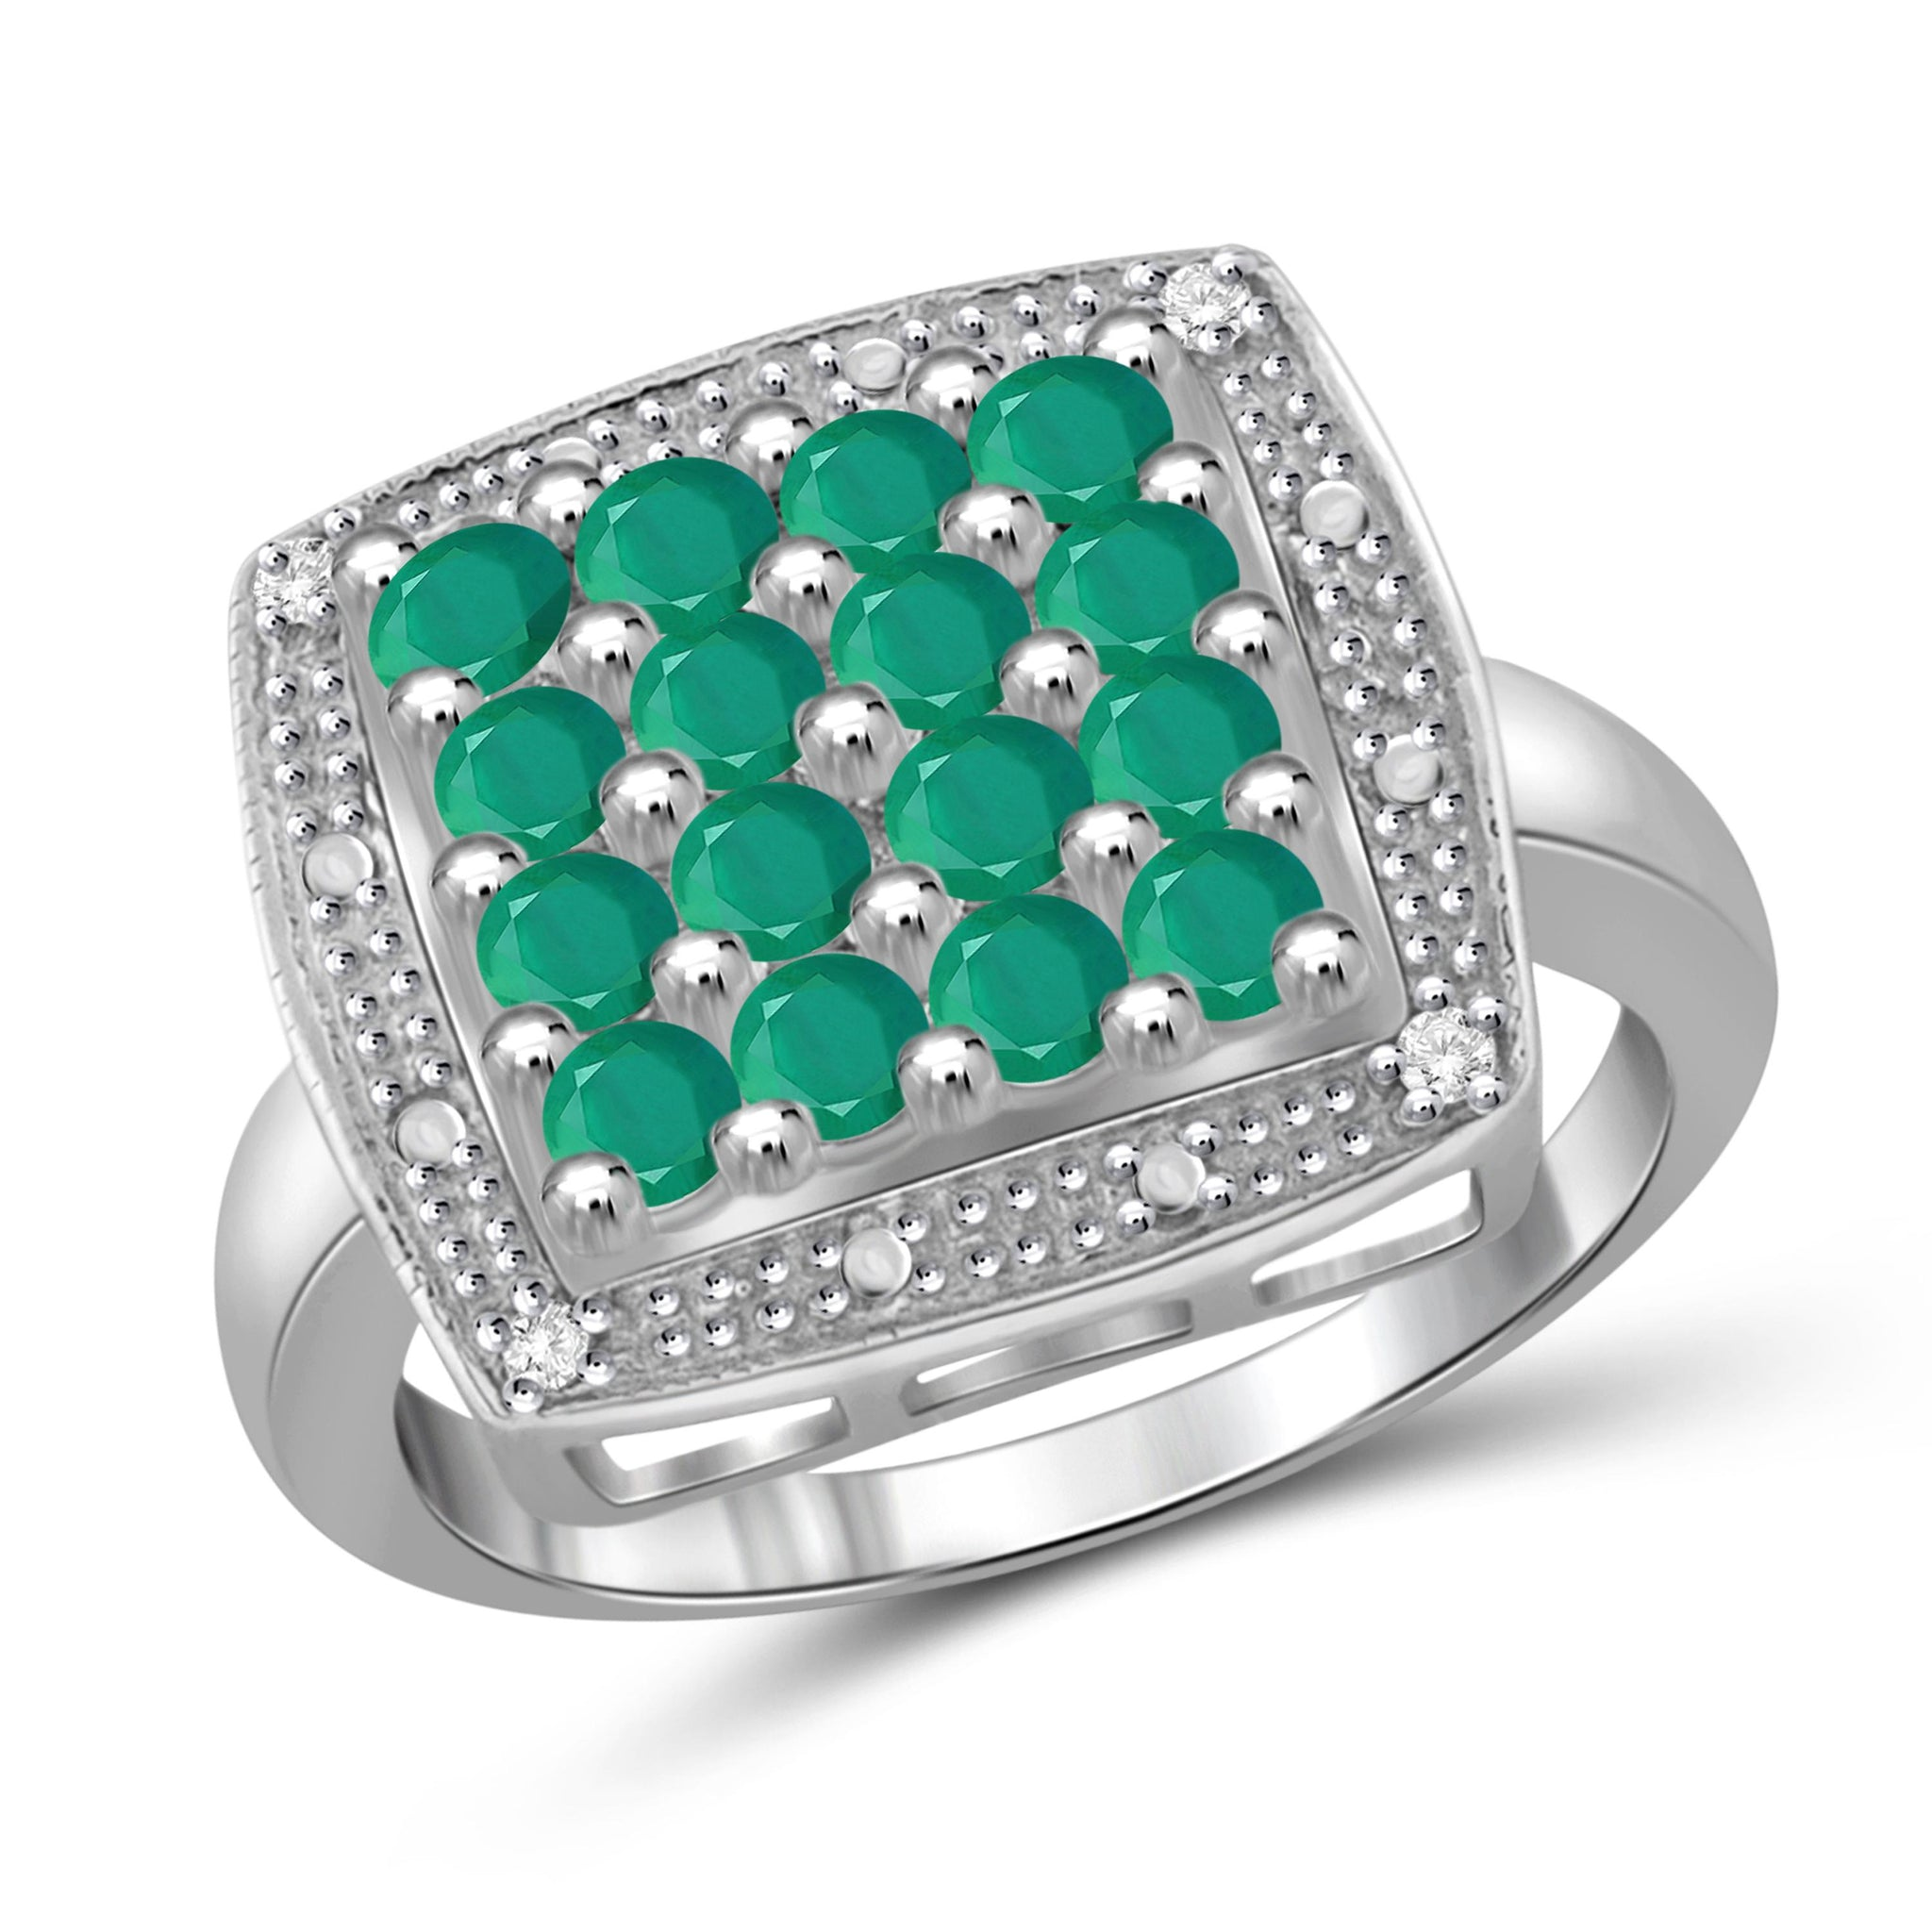 JewelonFire 1 Carat T.G.W. Emerald and White Diamond Accent Sterling Silver Ring- Assorted Colors